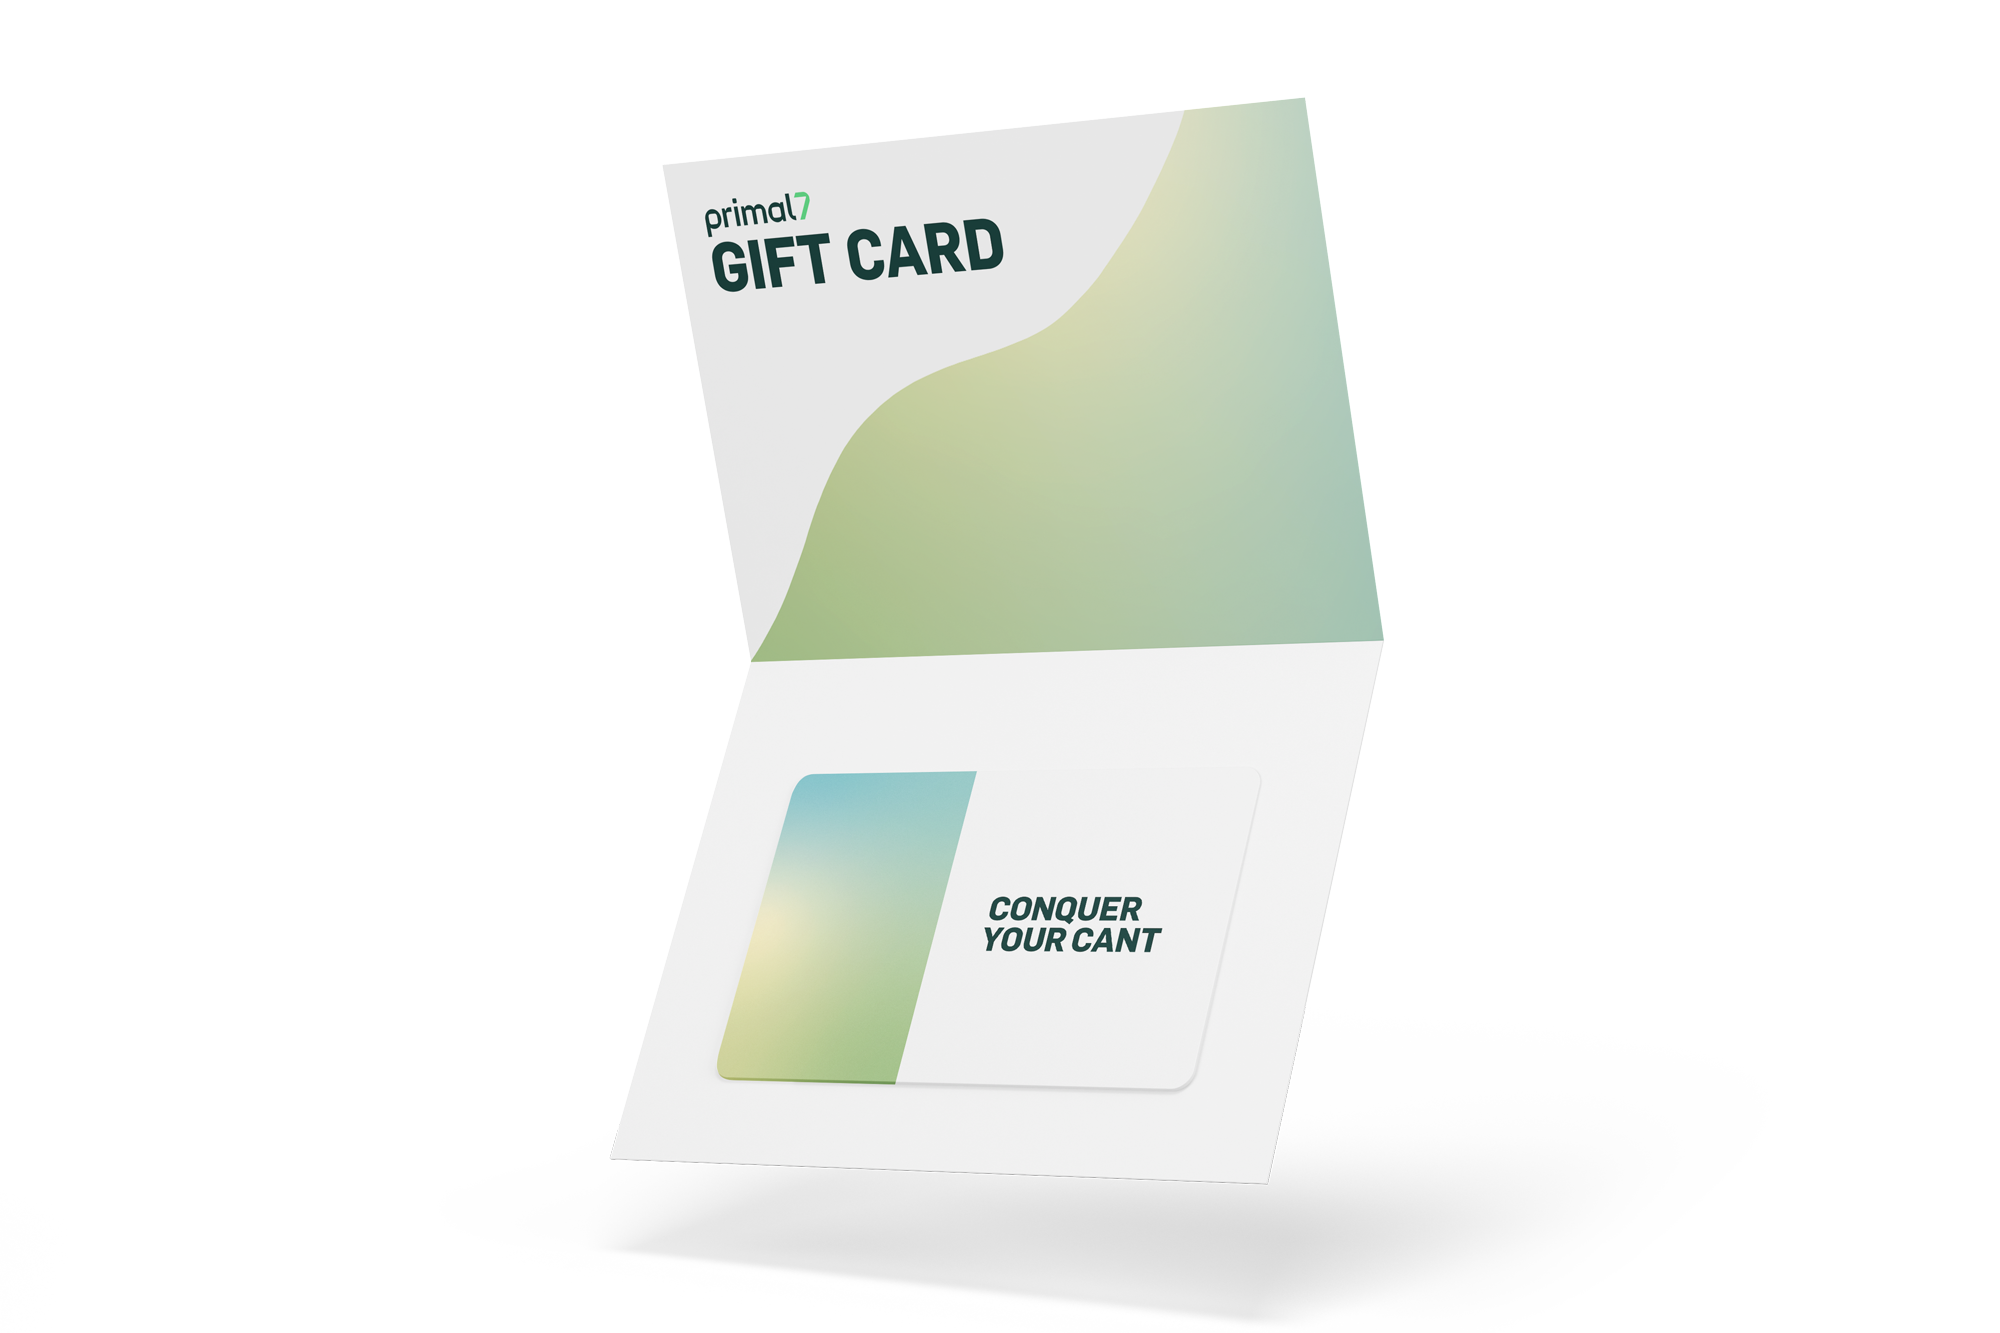 Primal 7 Gift Card